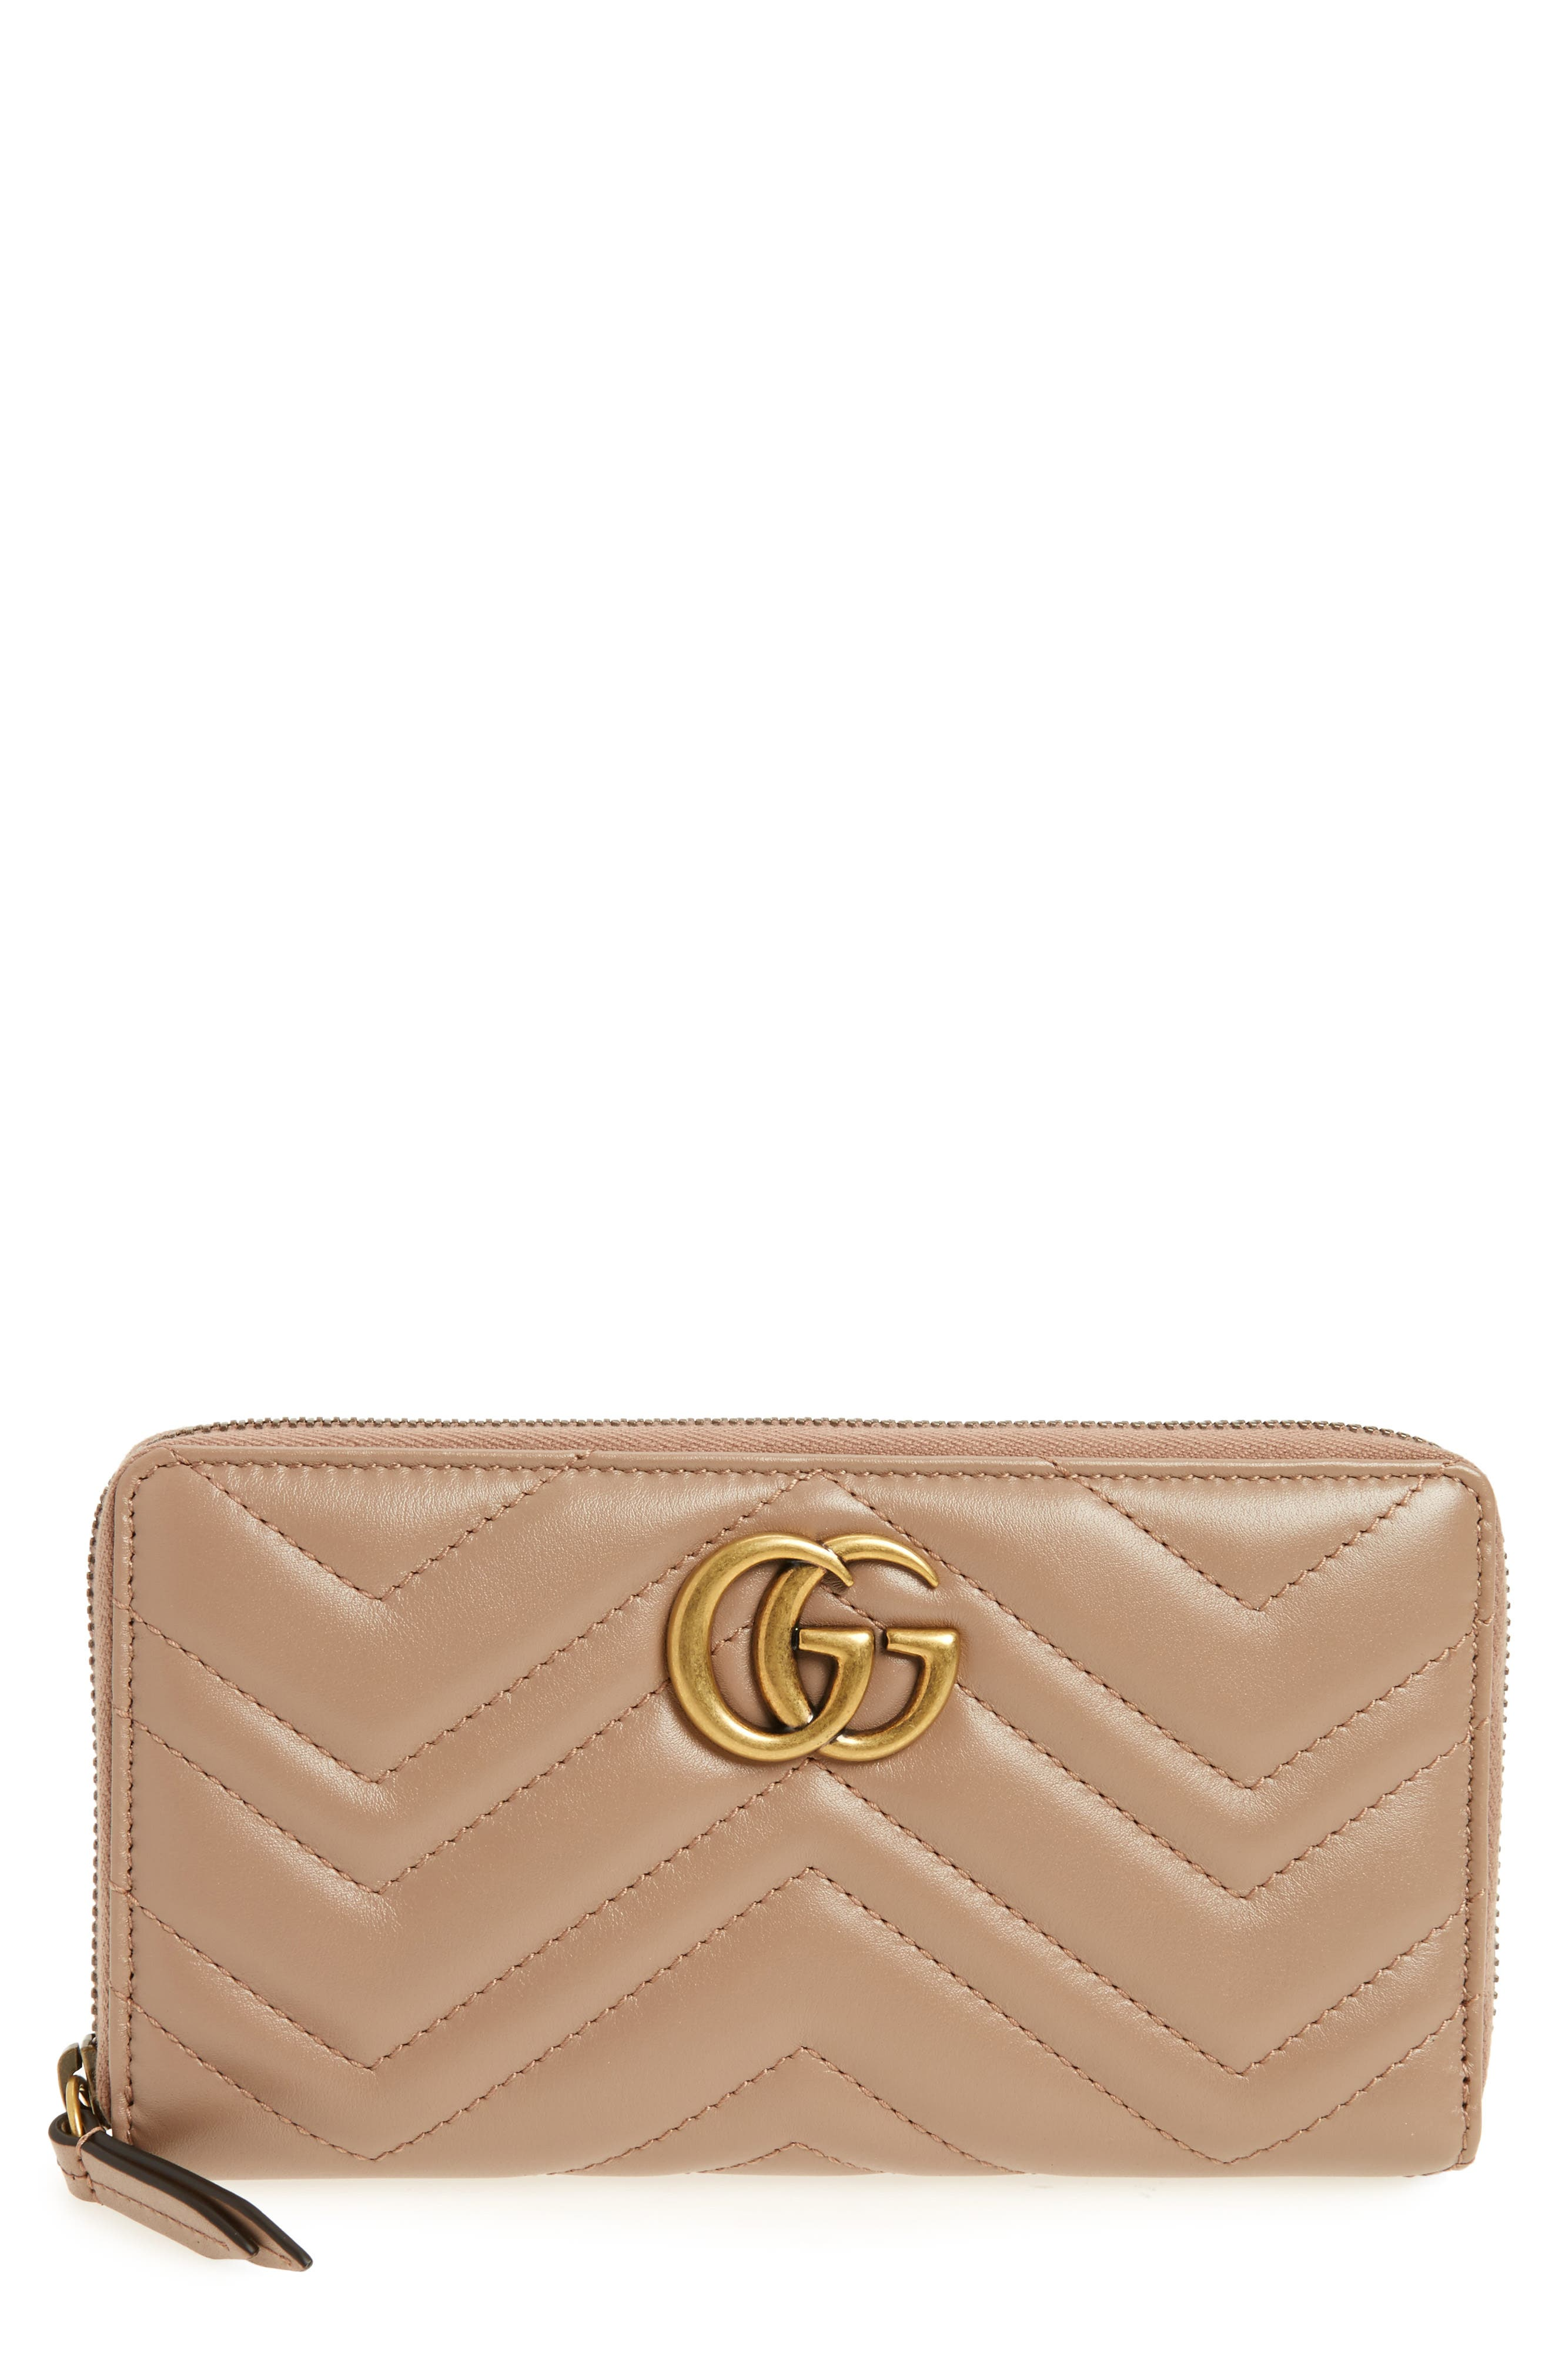 GUCCI GG Marmont Matelassé Leather Zip-Around Wallet, Main, color, PORCELAIN ROSE